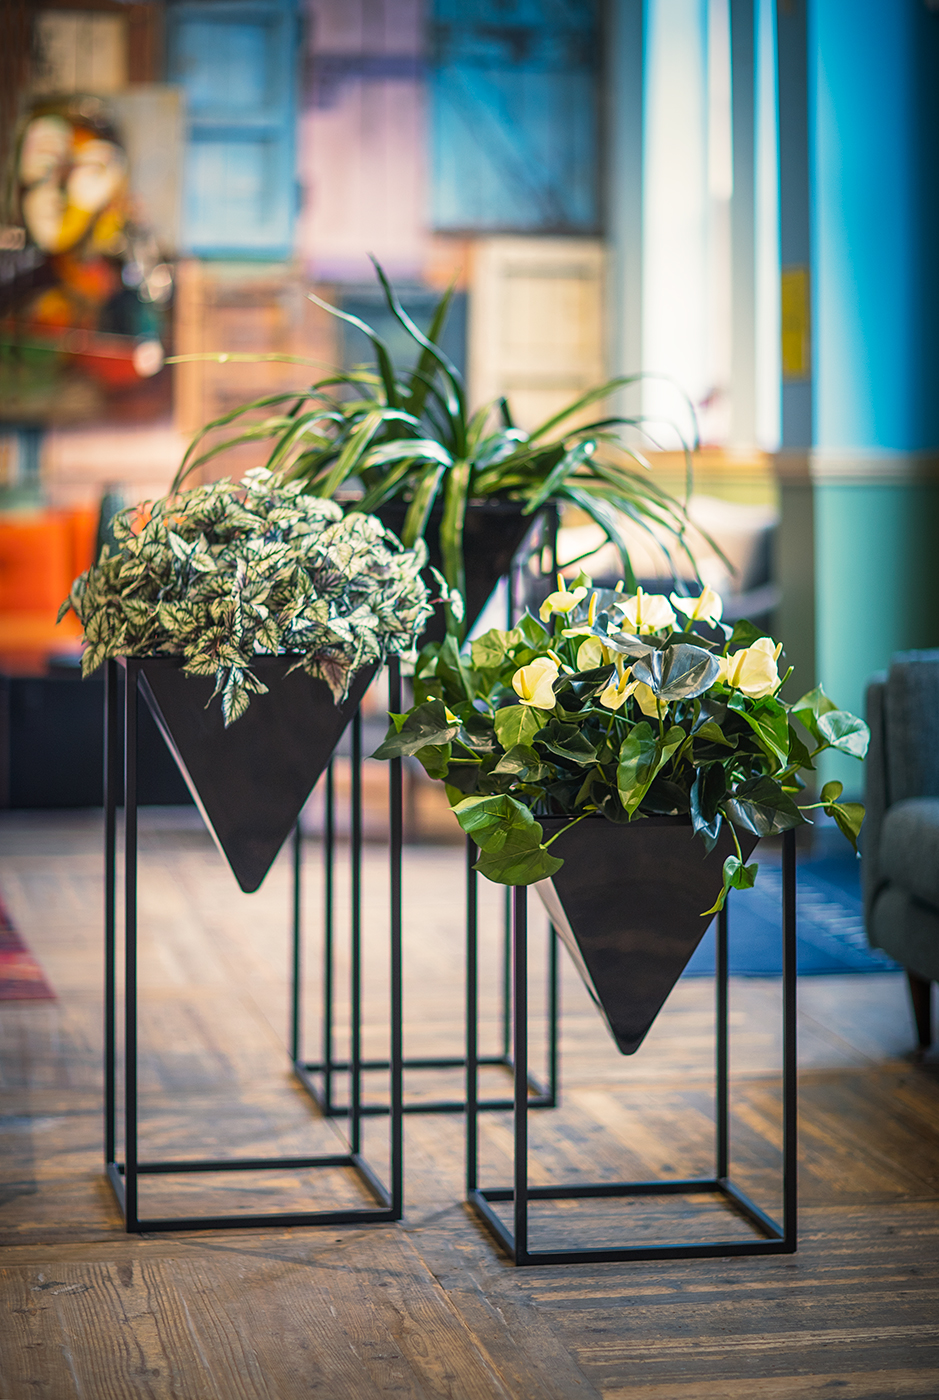 Alderley-Stand-Group-by-Europlanters